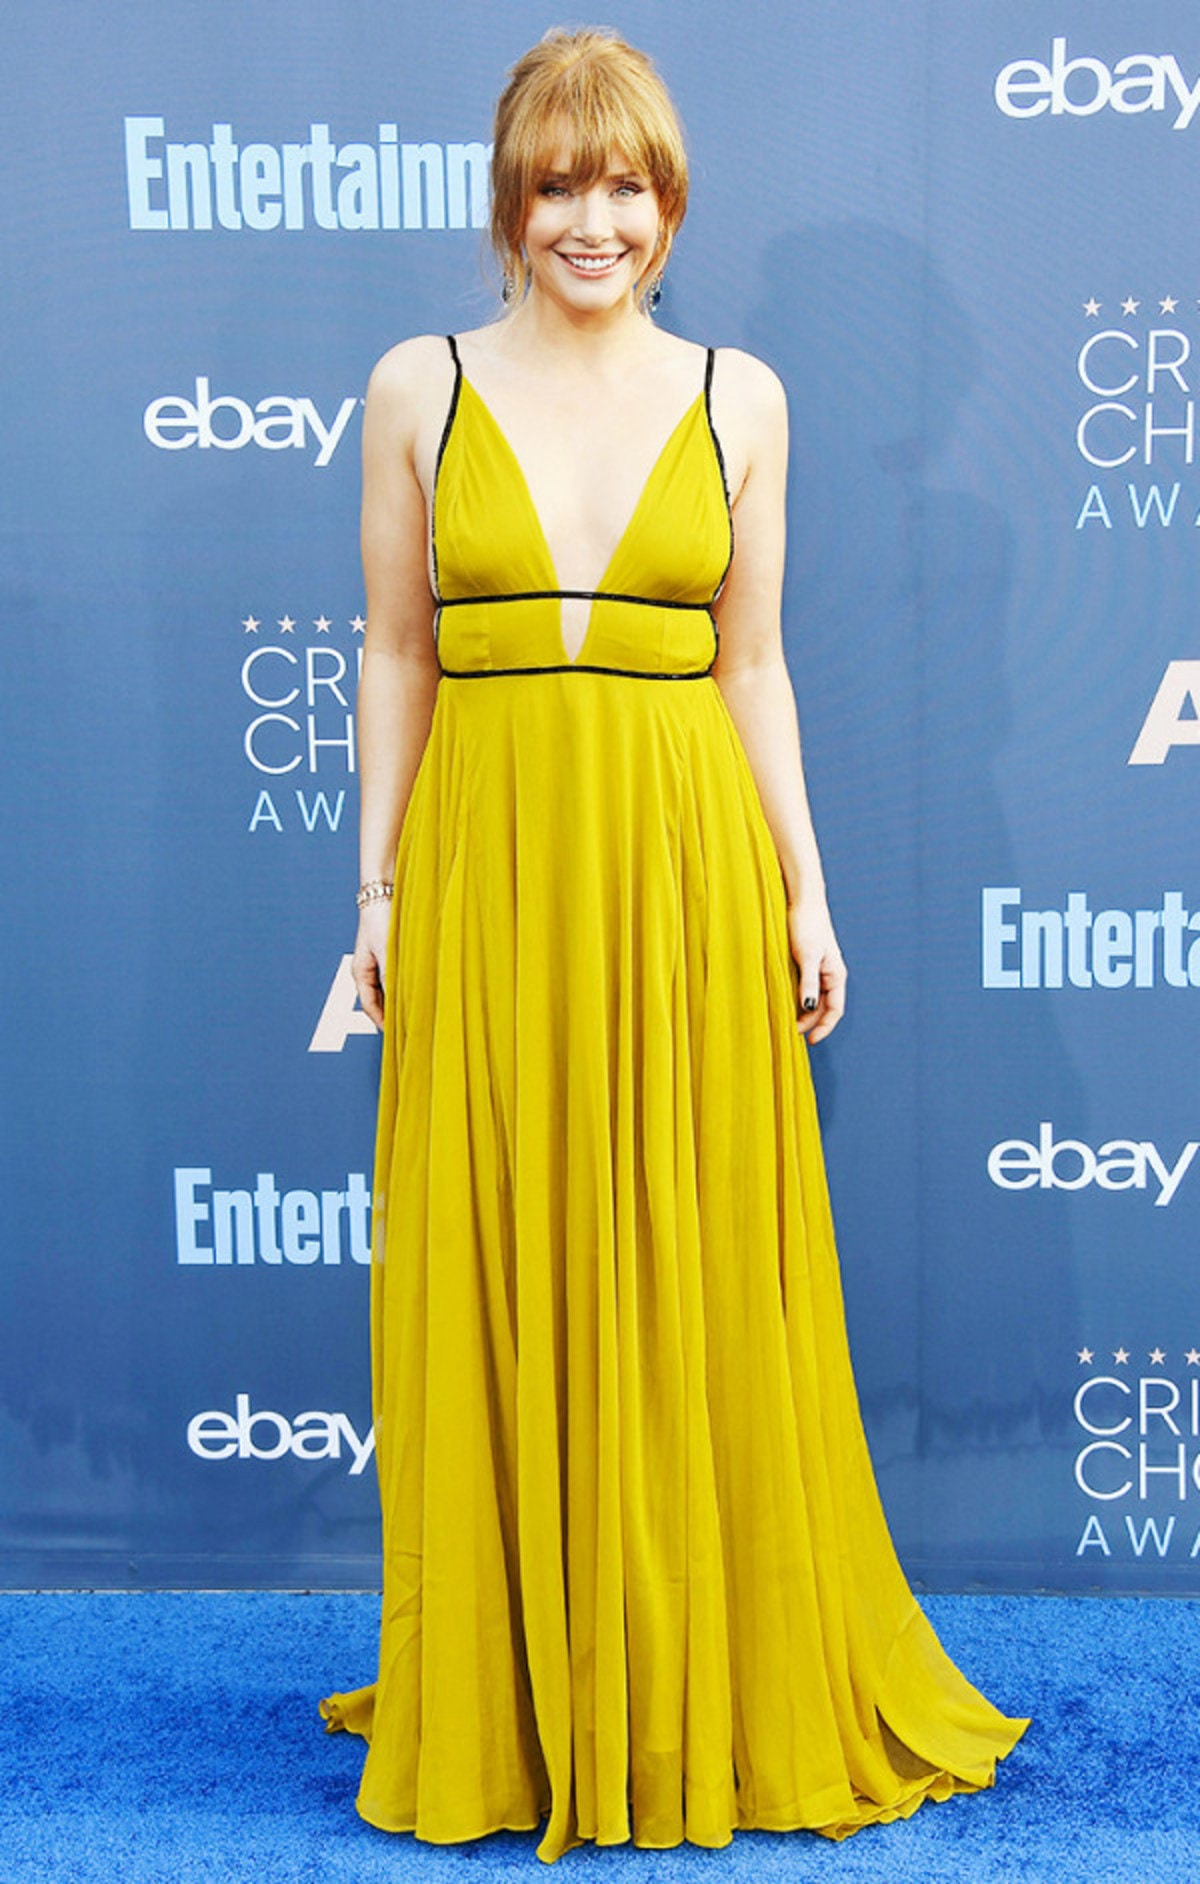 the-best-red-carpet-looks-from-the-critics-choice-awards-2075074.600x0c